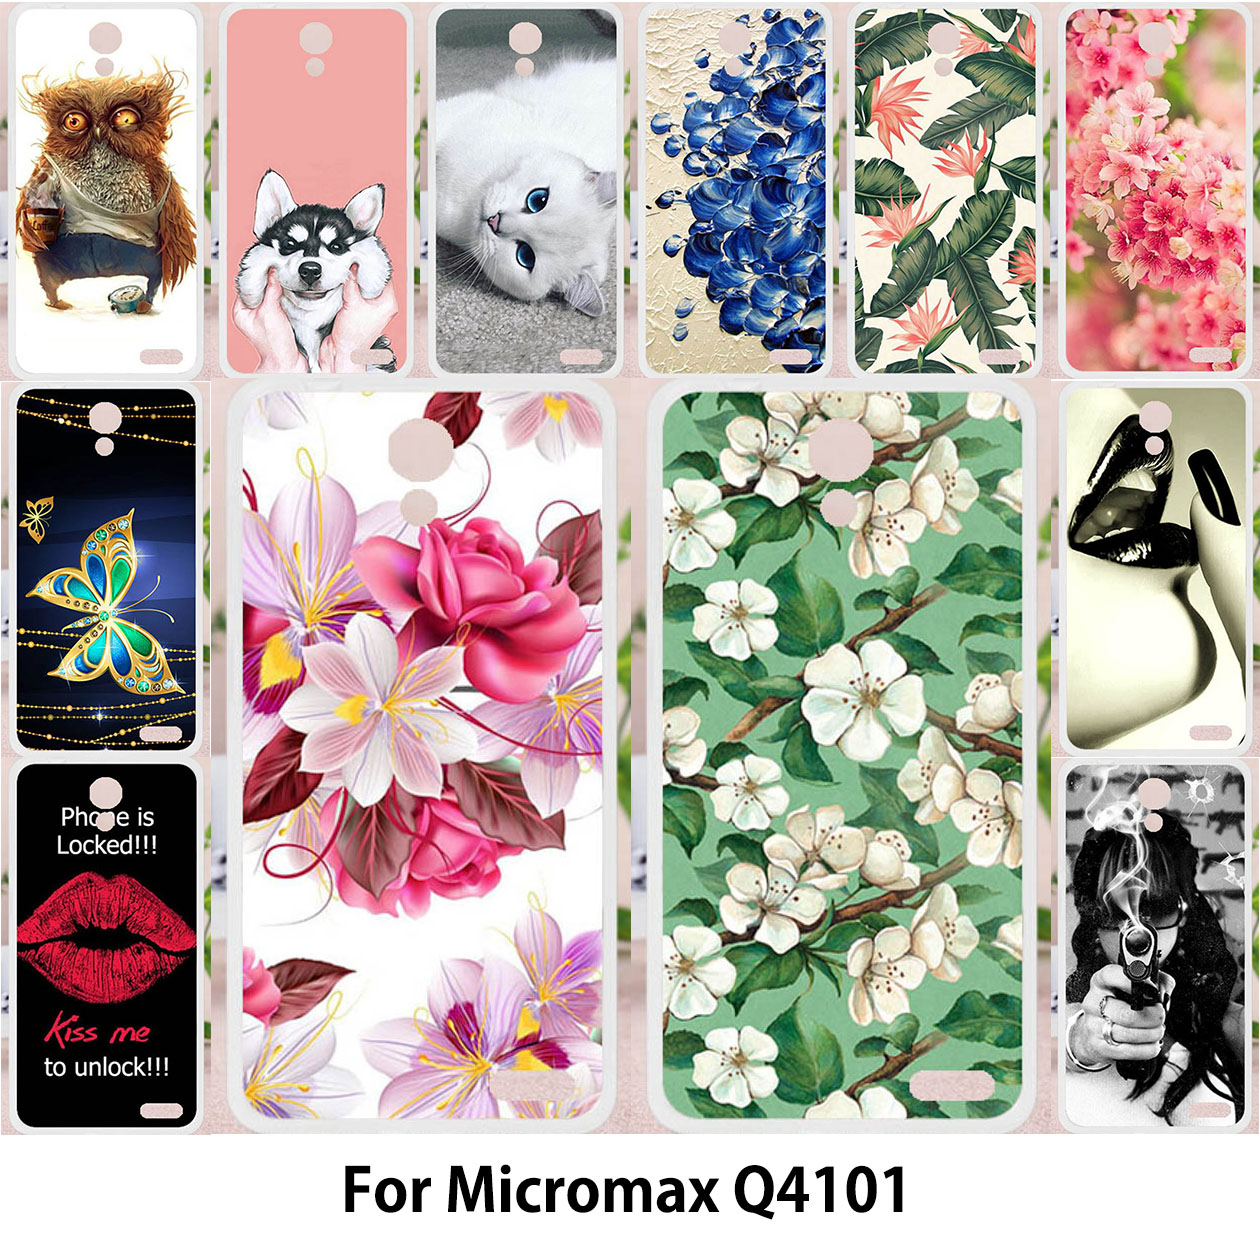 TAOYUNXI For Micromax Q4101 Video2 Case For Micromax Q4101 Bolt Warrior 1Plus Soft Painting Owl Cat Flower Cute Animal Patterned